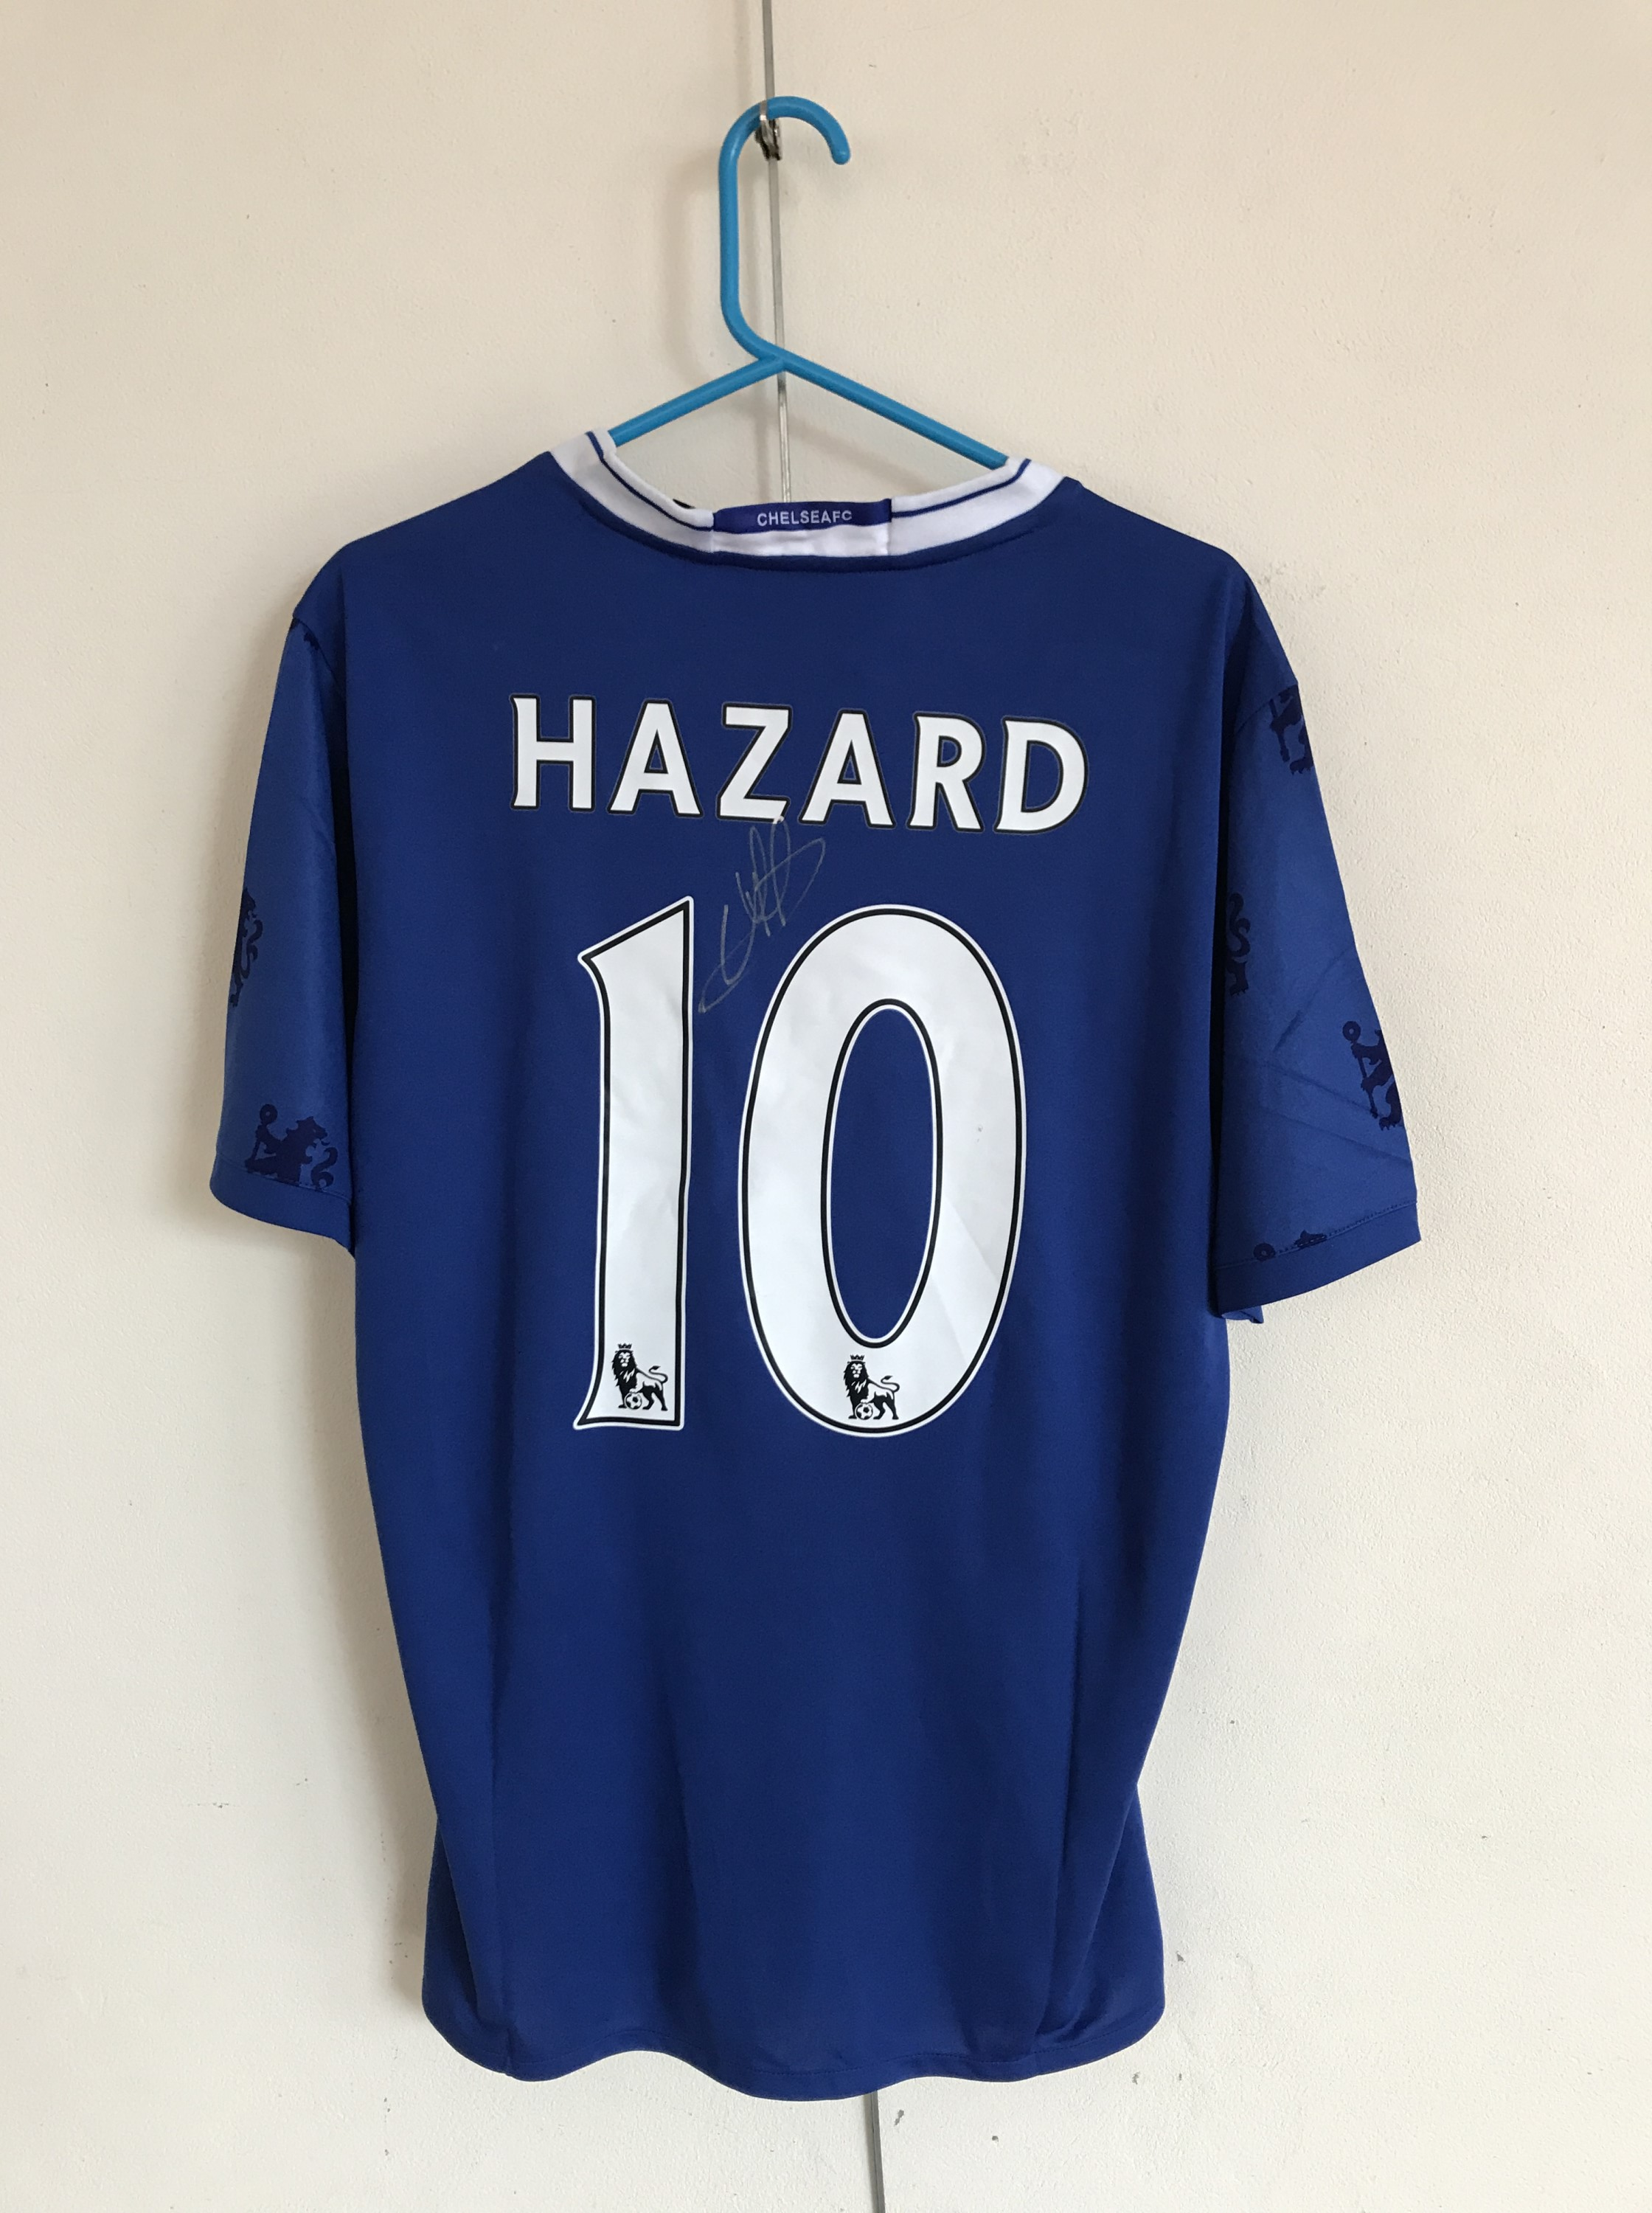 Lot 51 - [Autographs] A Chelsea No. 10 football shirt signed by Eden Hazard